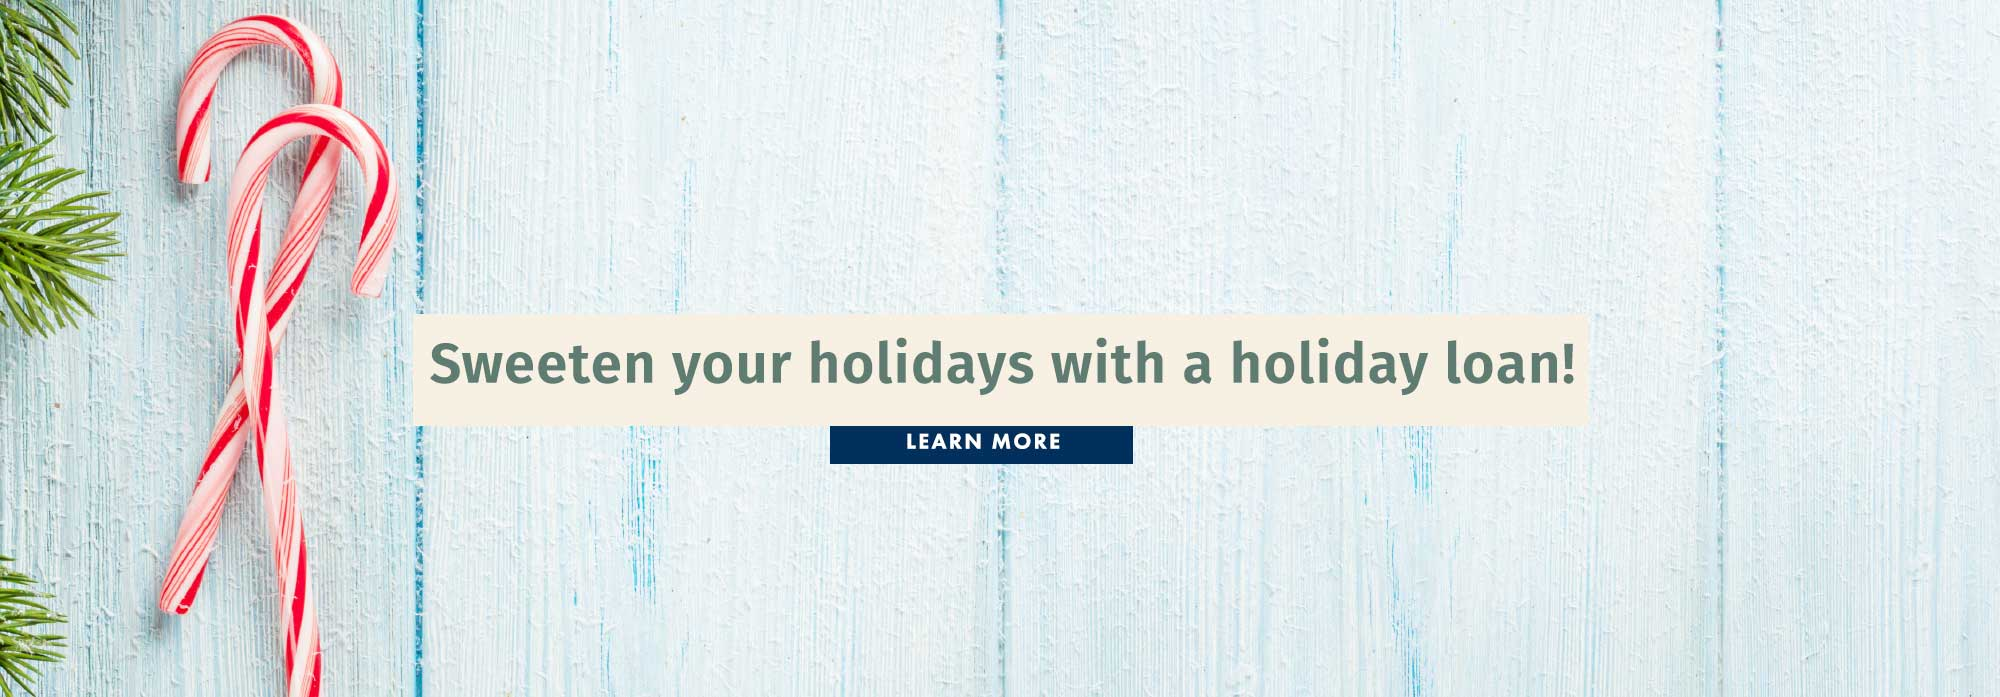 Sweeten your holidays with a holiday loan!